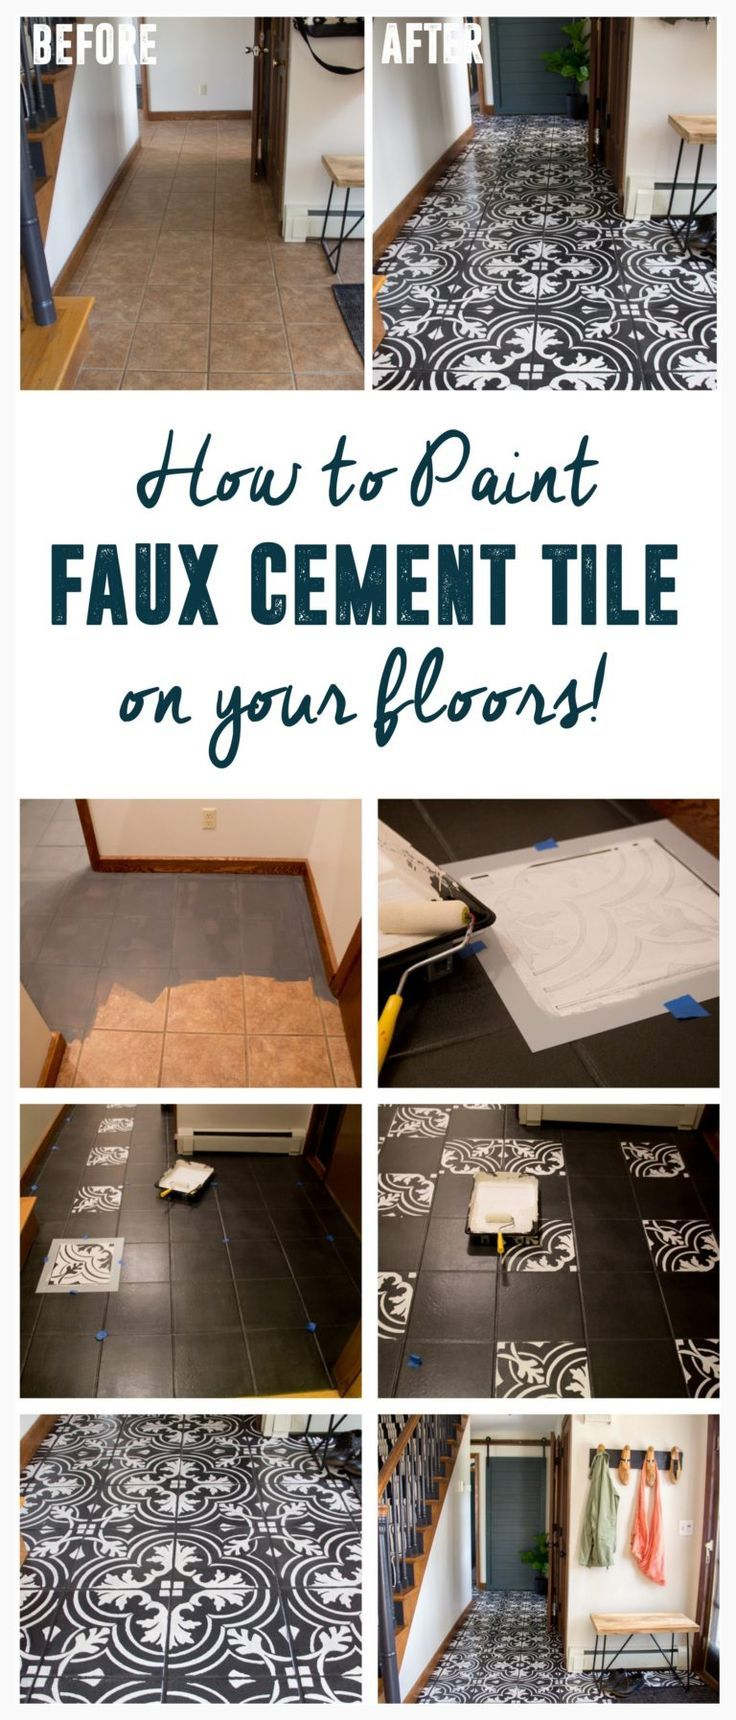 Faux cement tile painted floors painted tiles tile flooring and diy faux cement tile how to paint tile diy faux cement tile floors www dailygadgetfo Images